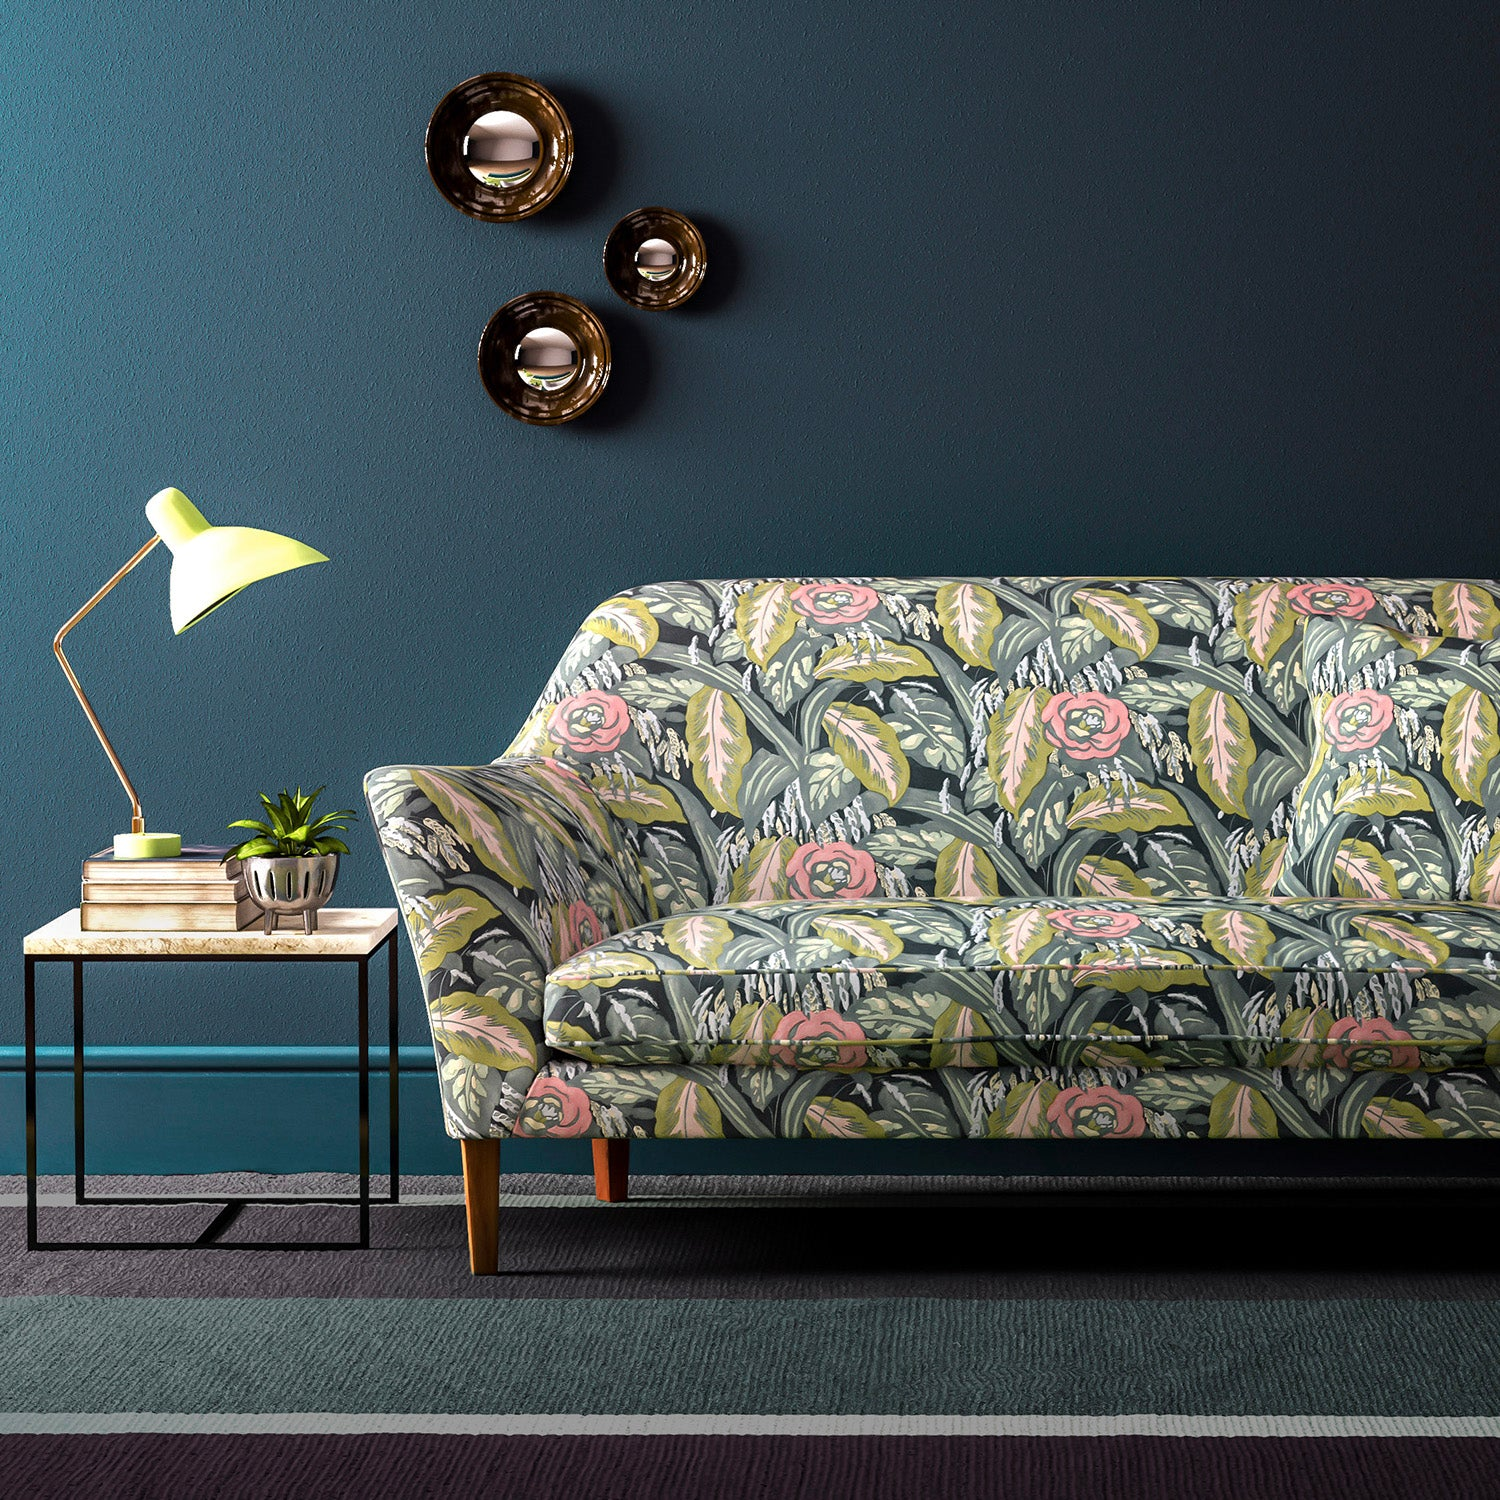 Velvet sofa upholstered in a pink and smokey blue floral velvet upholstery fabric with a stain resistant finish